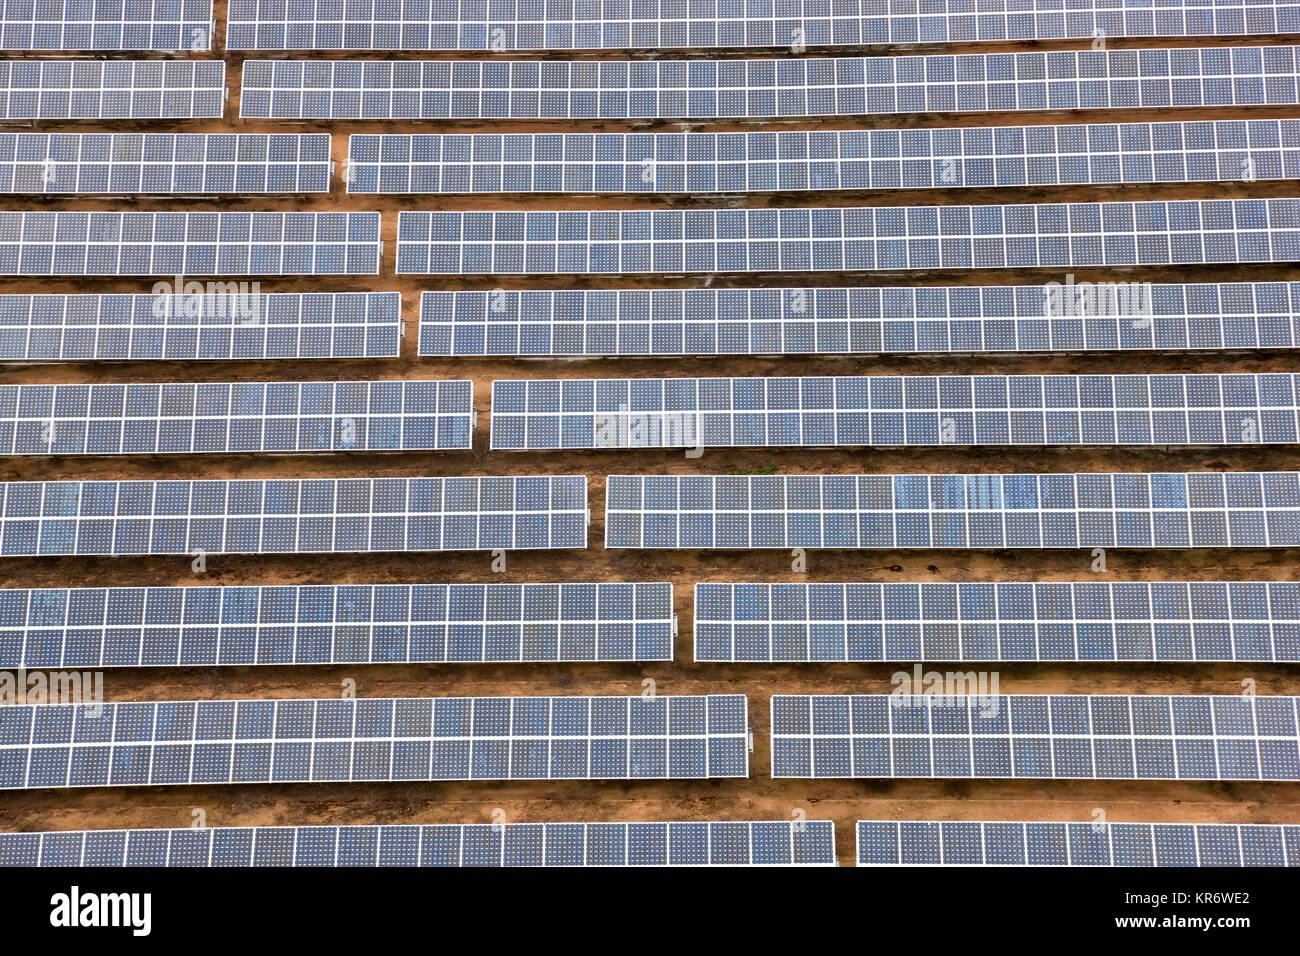 Aerial view of long rows of solar panels in the desert. - Stock Image